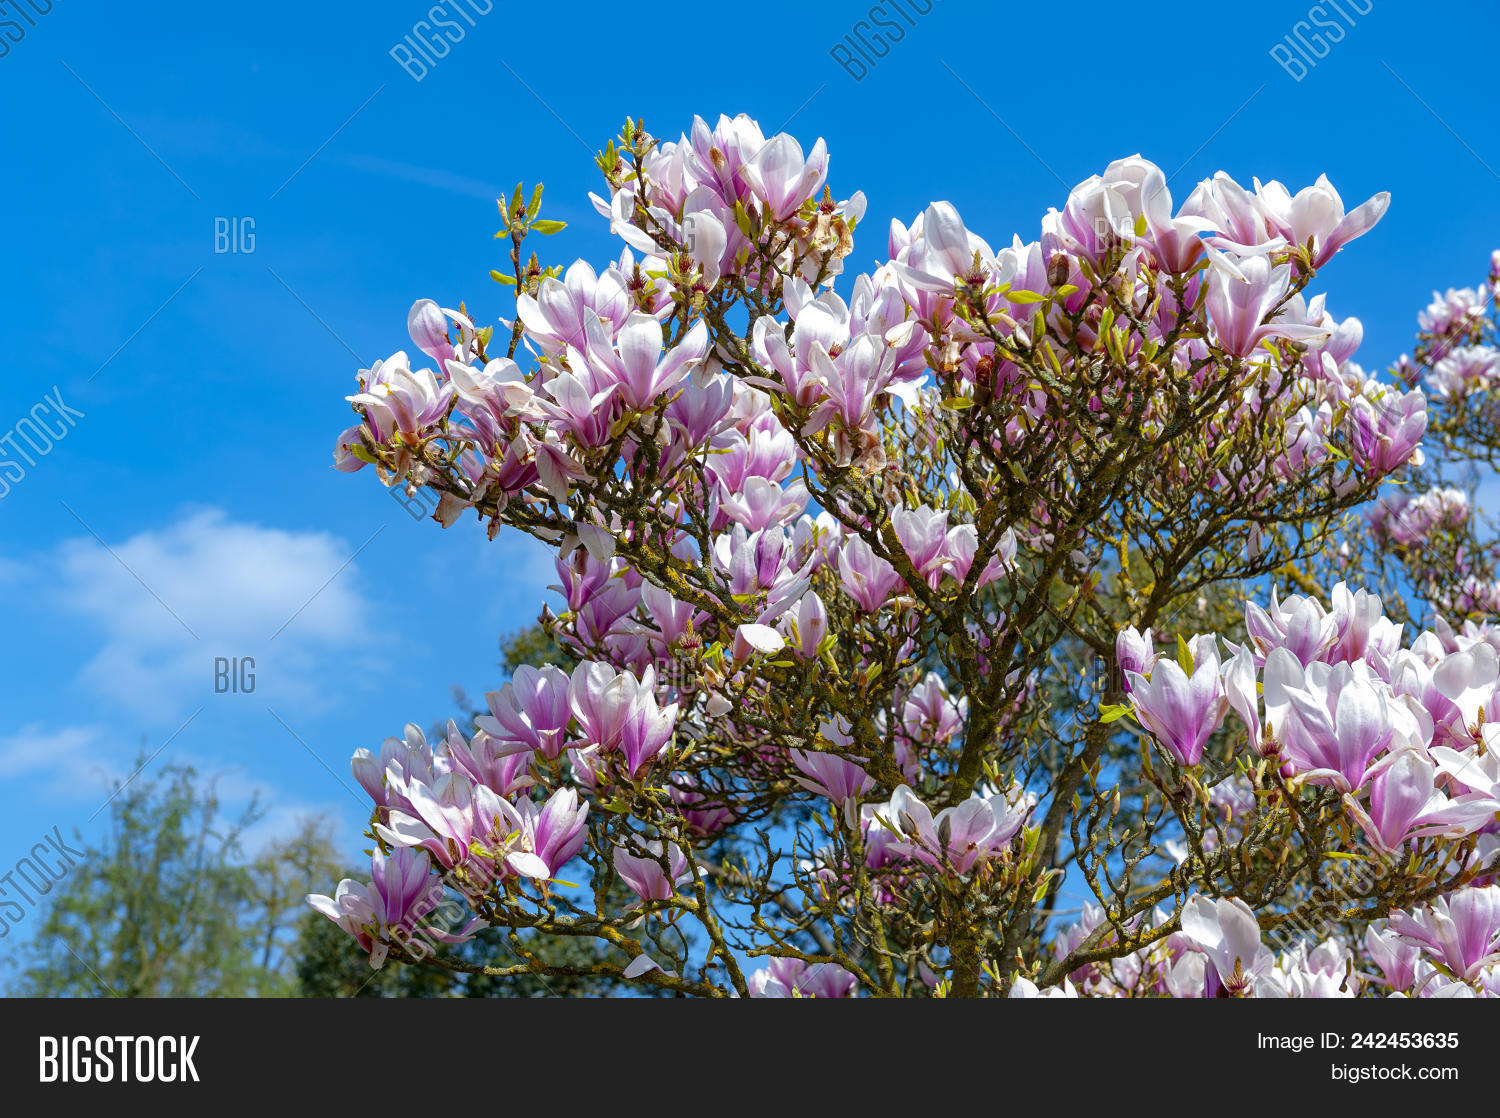 Flowering Branches Image Photo Free Trial Bigstock